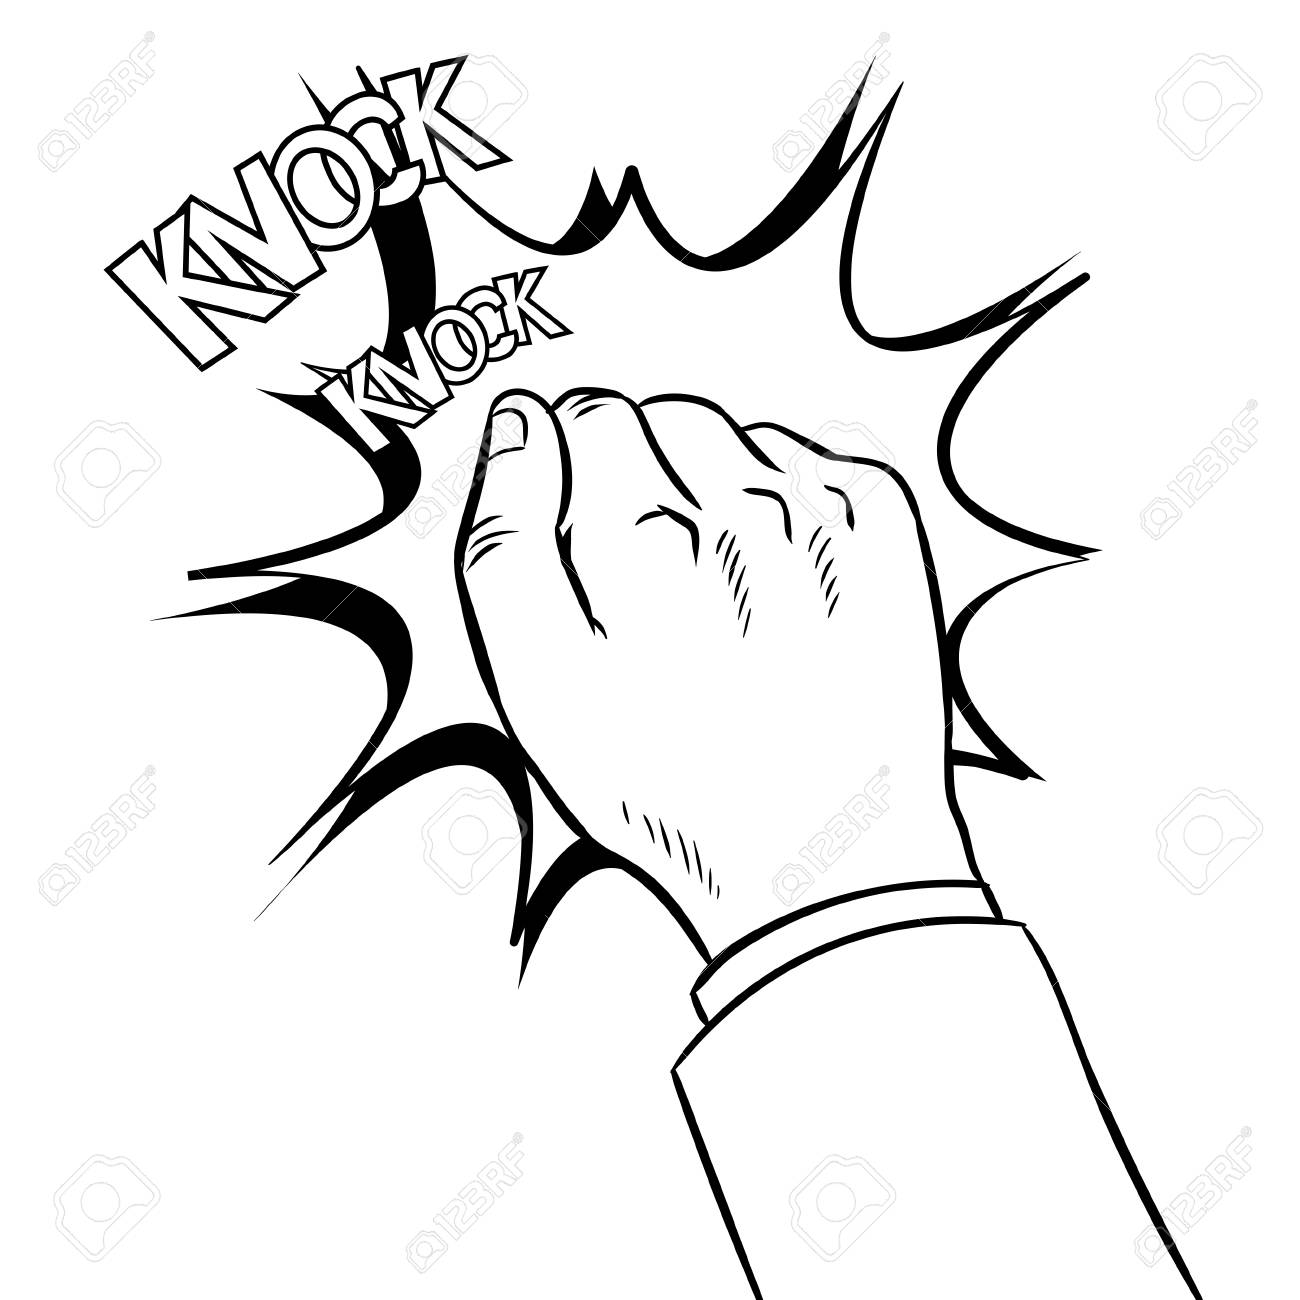 Hand knocking door coloring book vector.